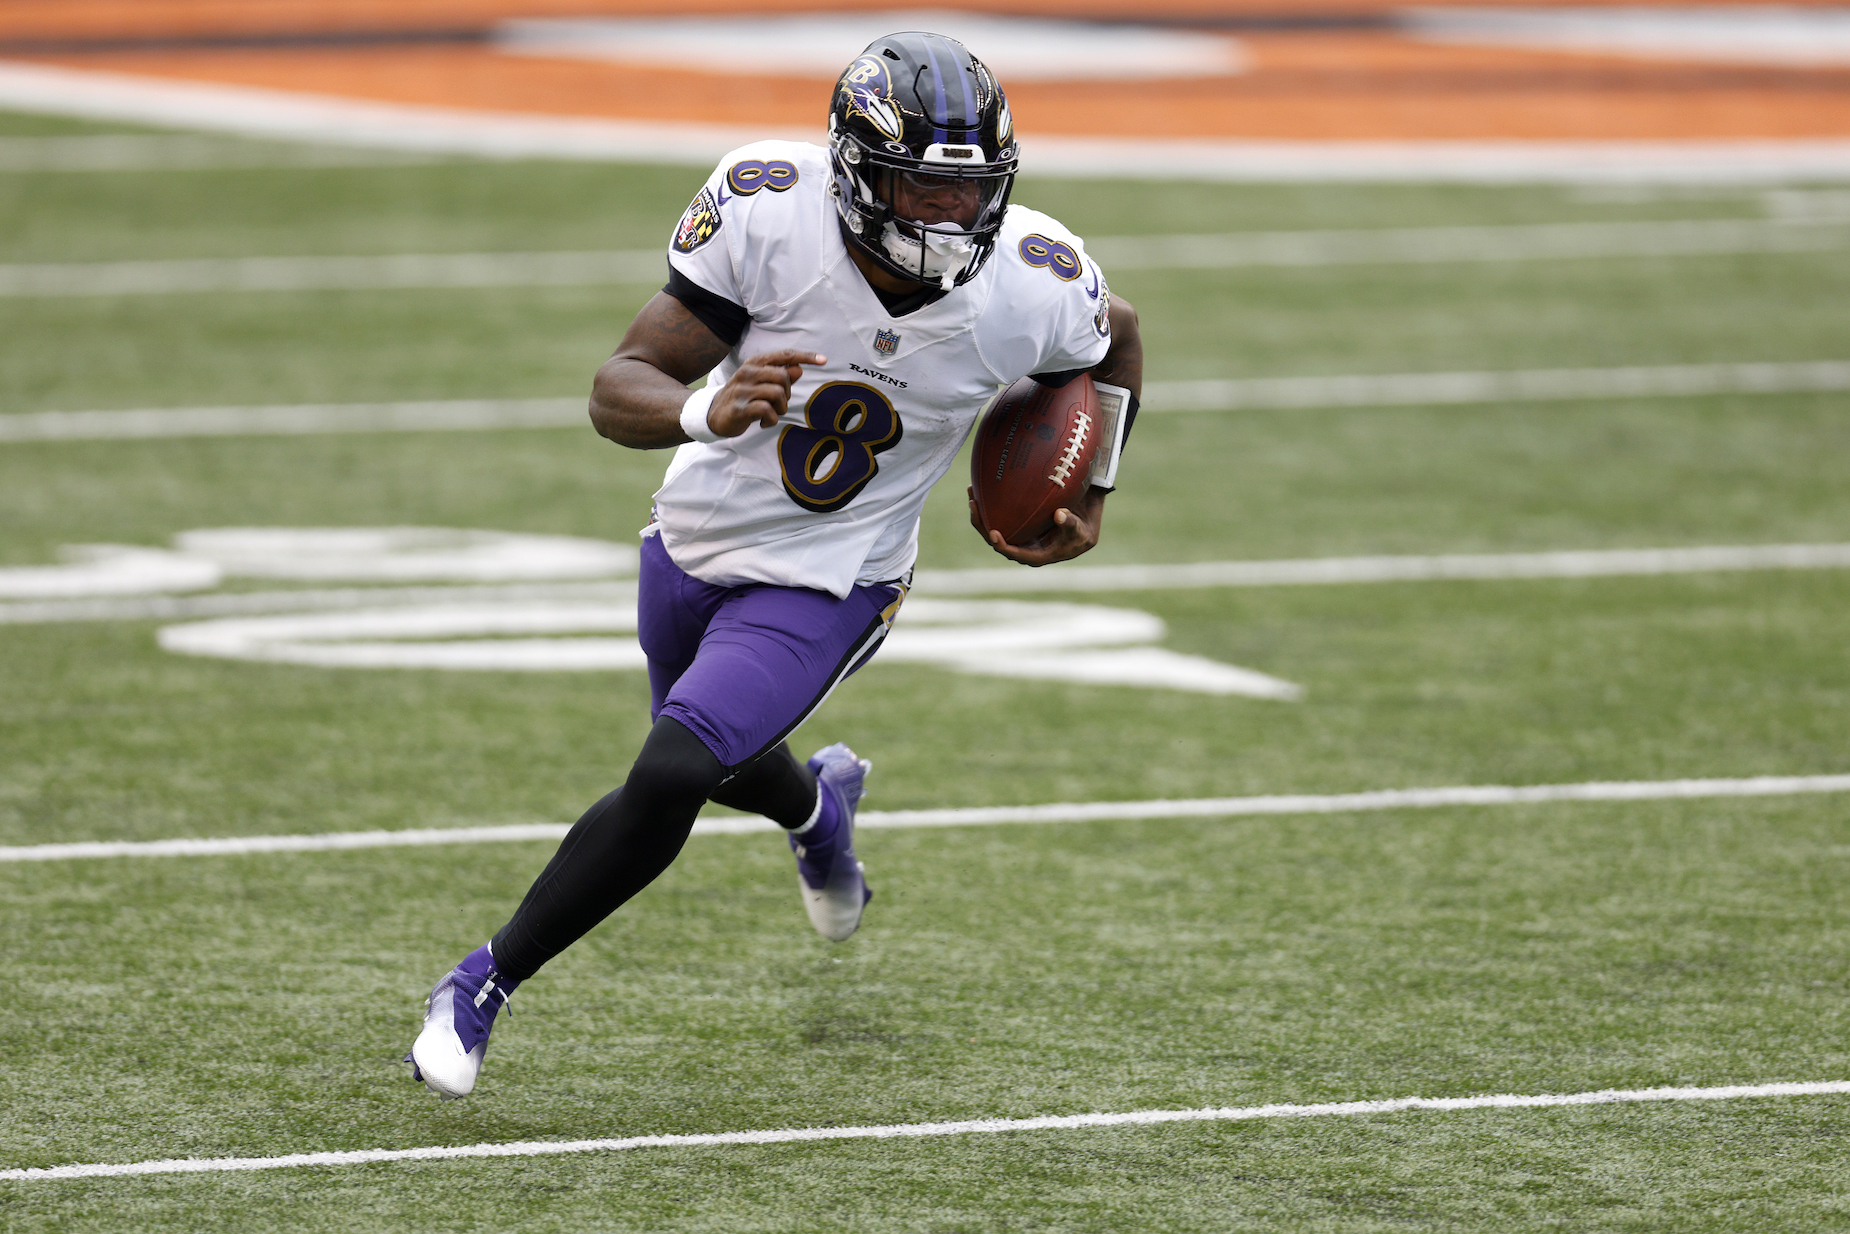 While Baltimore Ravens quarterback Lamar Jackson has had plenty of success, his playoff record leaves something to be desired.